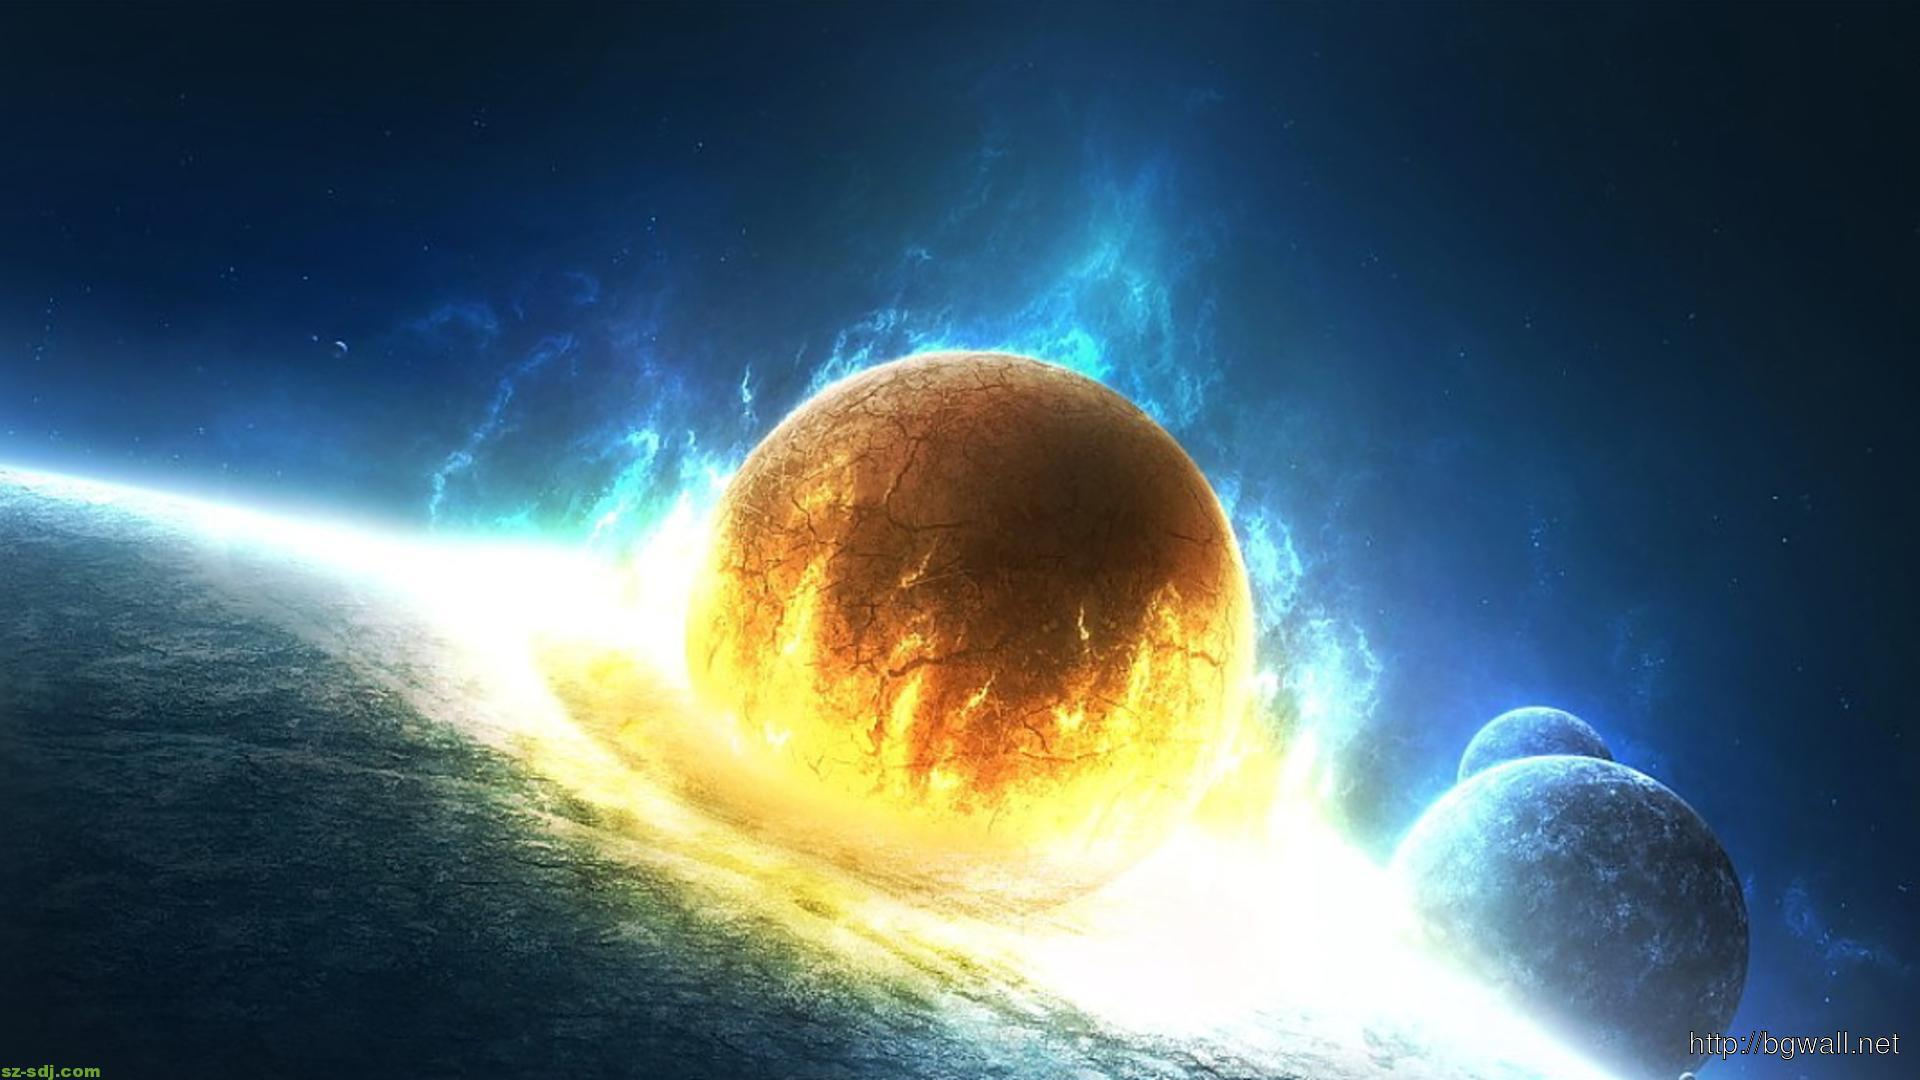 Asteroid Meteor Wallpaper High Definition Background